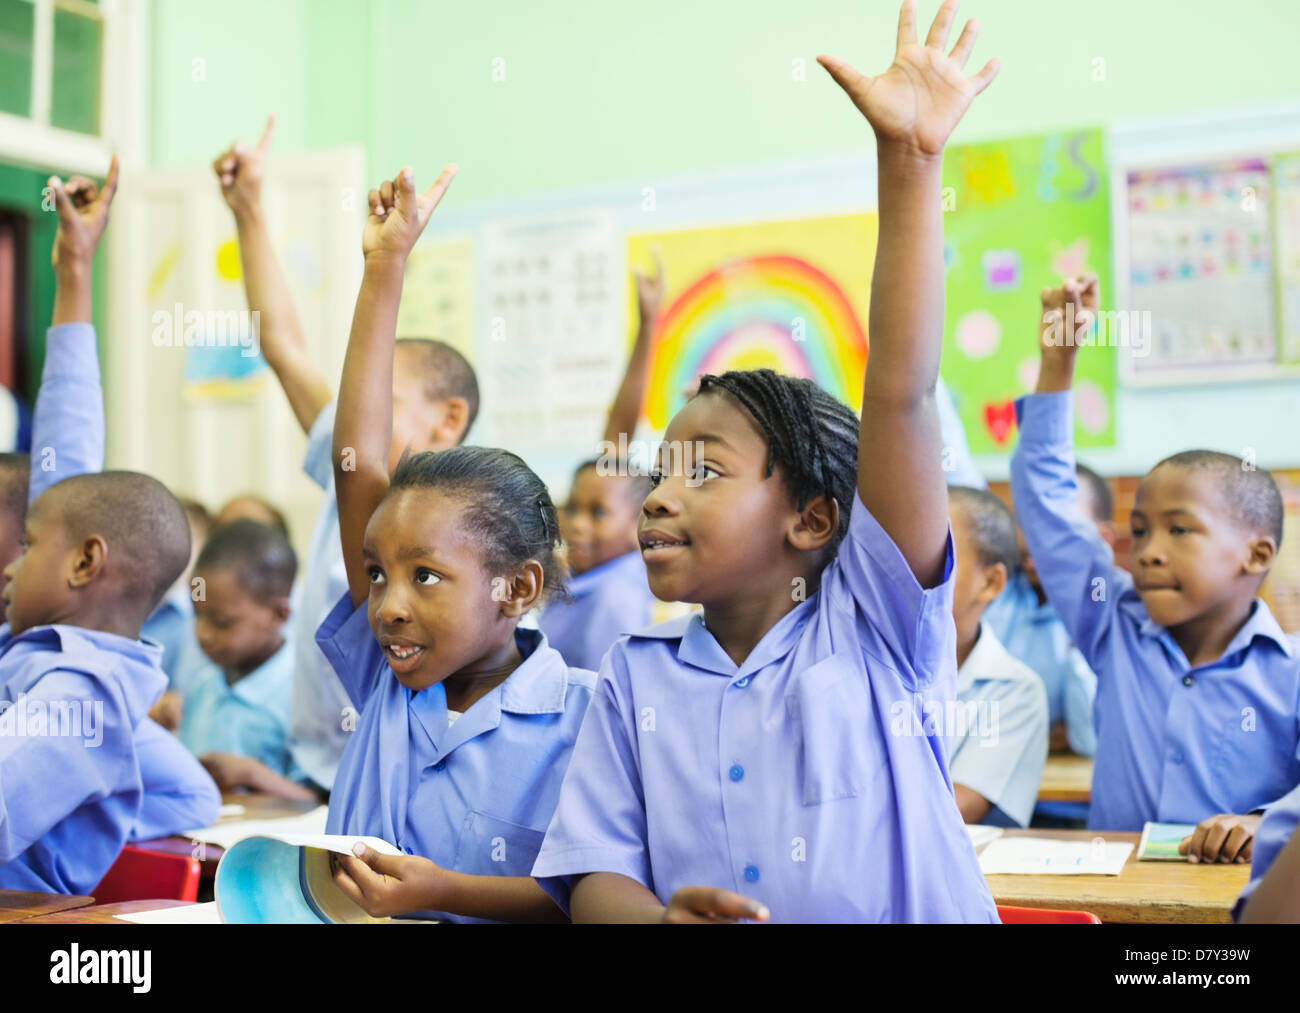 Students raising hands in class - Stock Image